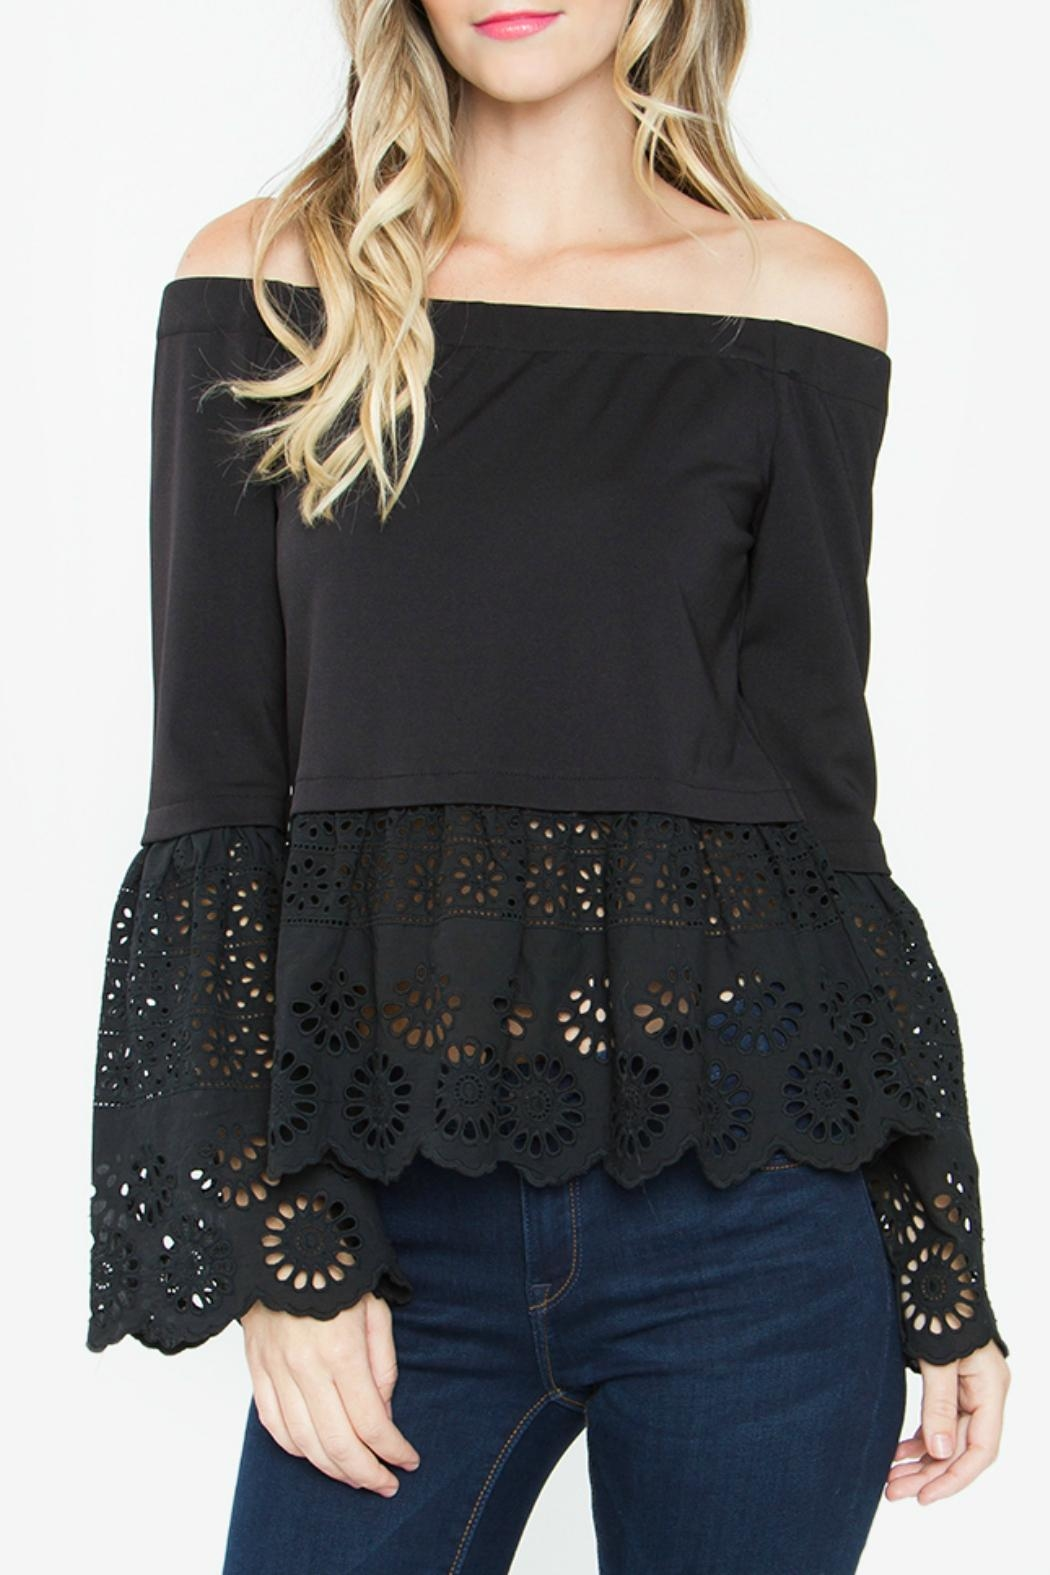 580065cbfce4bf Sugar Lips Black Off Shoulder Top from Pennsylvania by The Hanger ...